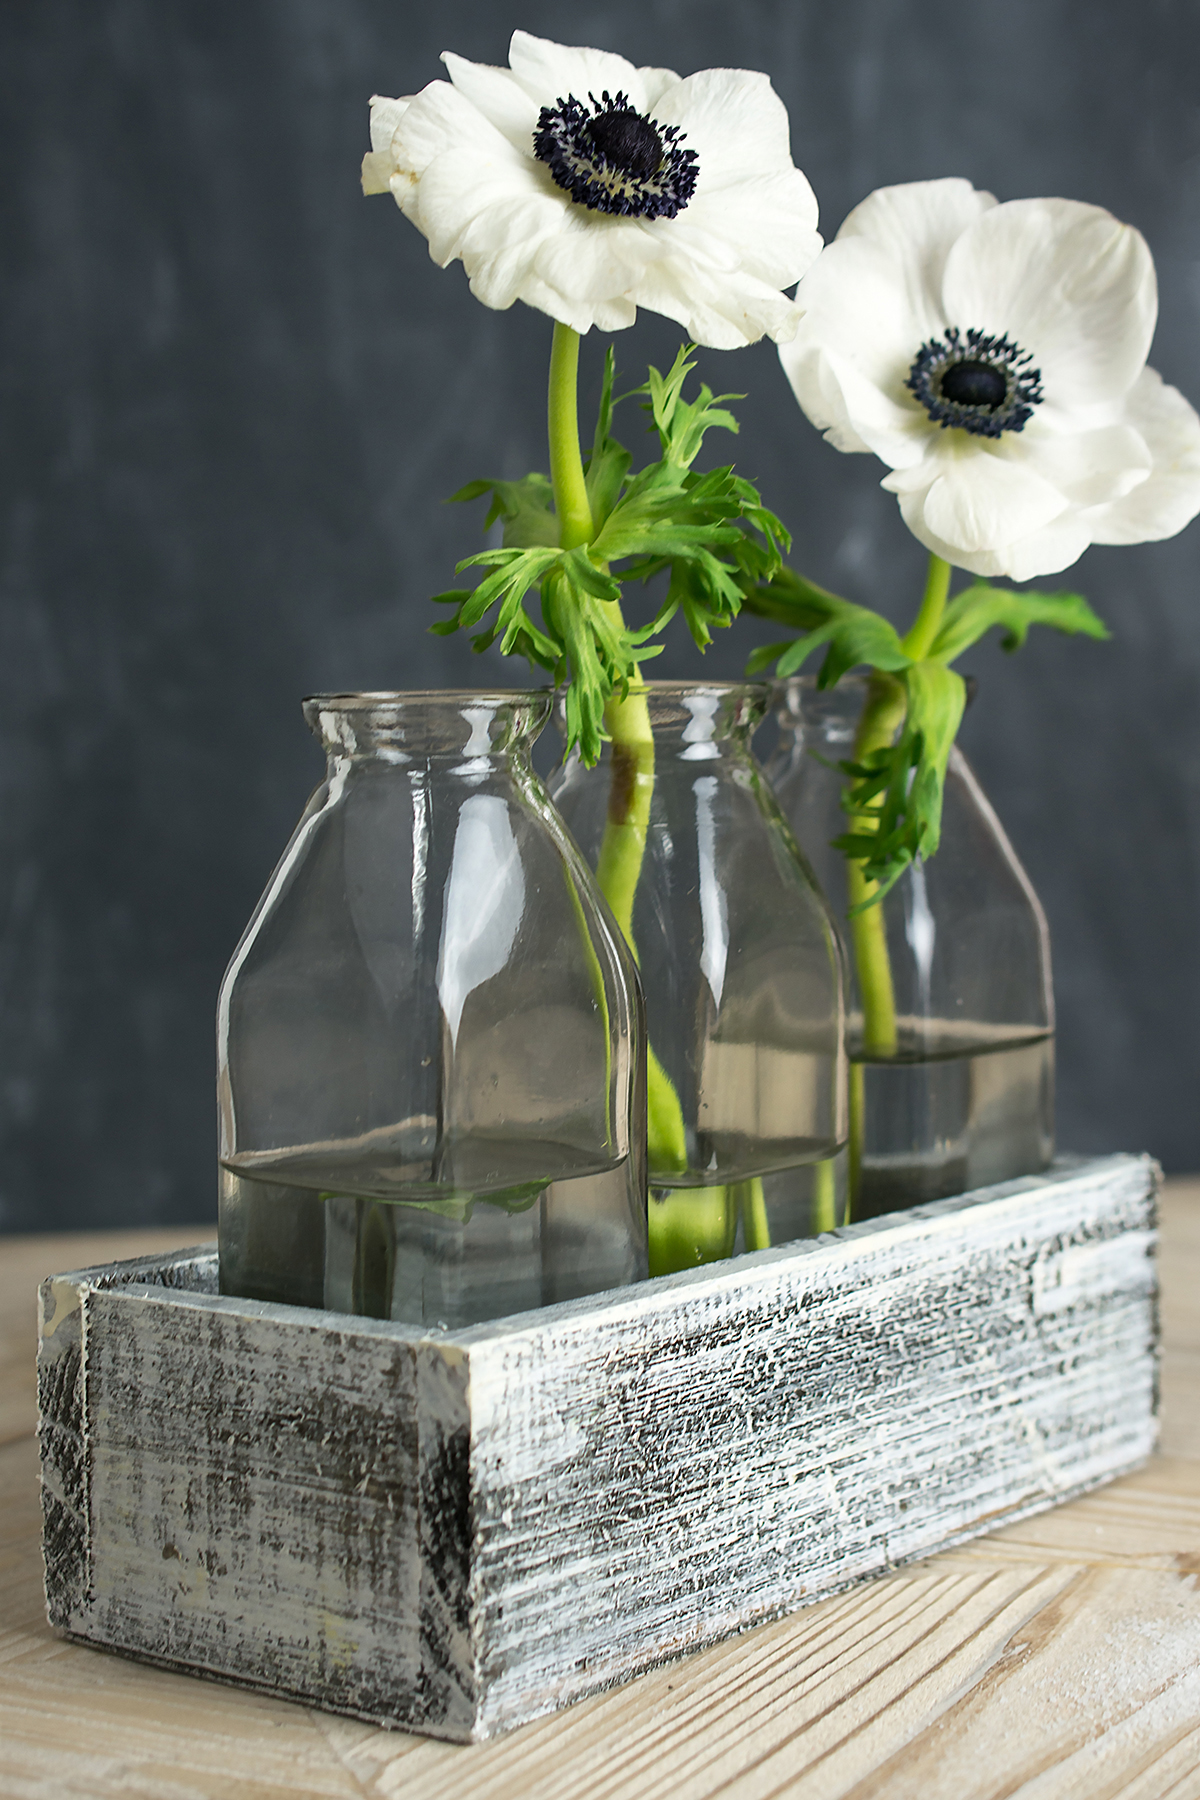 White Washed Wood Crate with 3 Milk Bottles